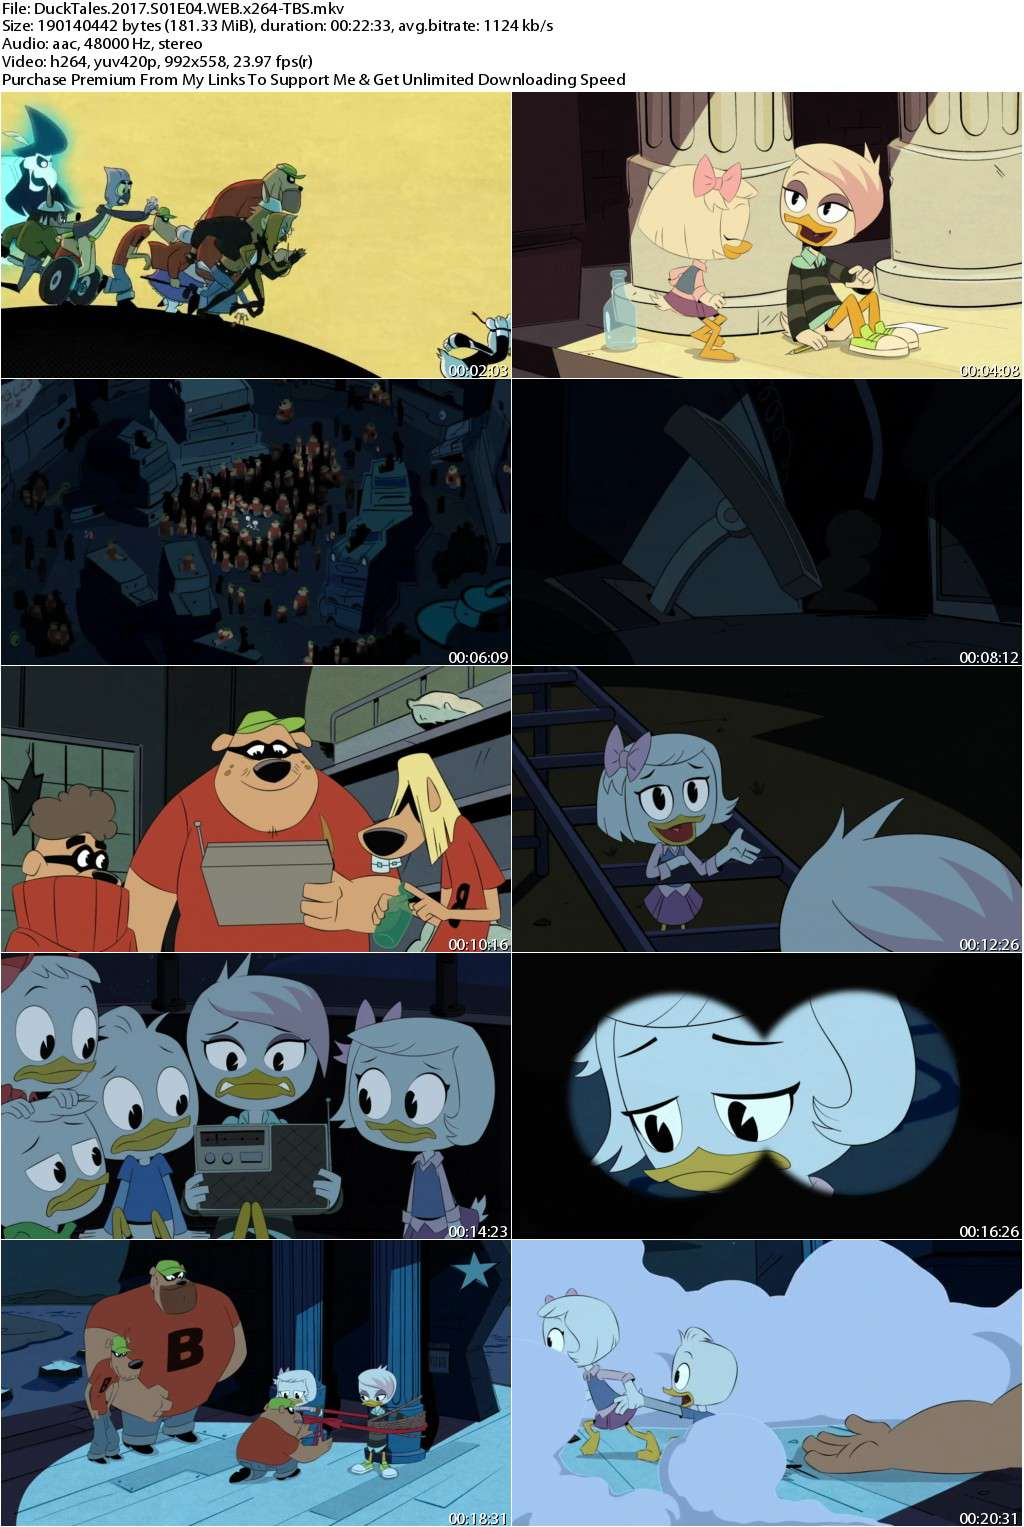 DuckTales 2017 S01E04 WEB x264-TBS